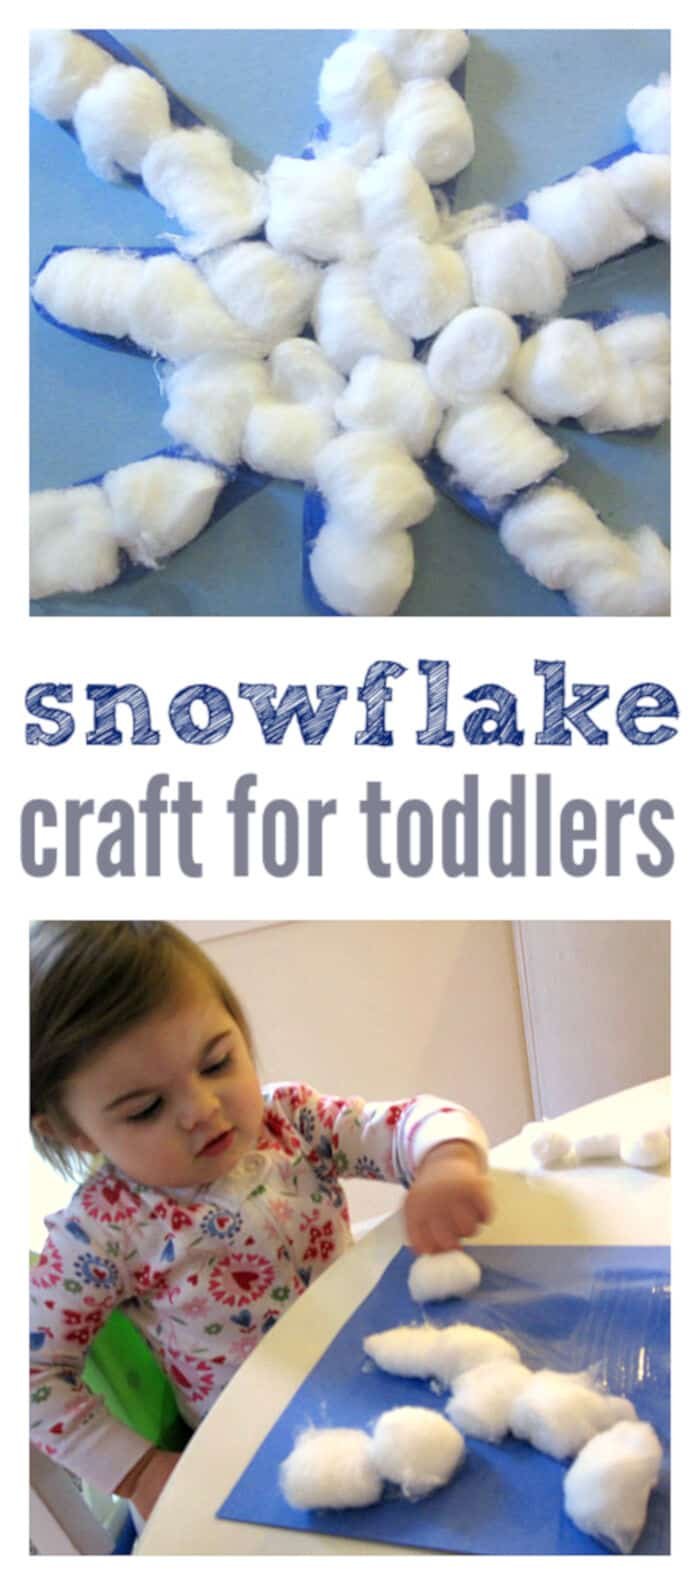 Snowflake-Craft-For-Toddlers-by-No-Time-For-Flash-Cards